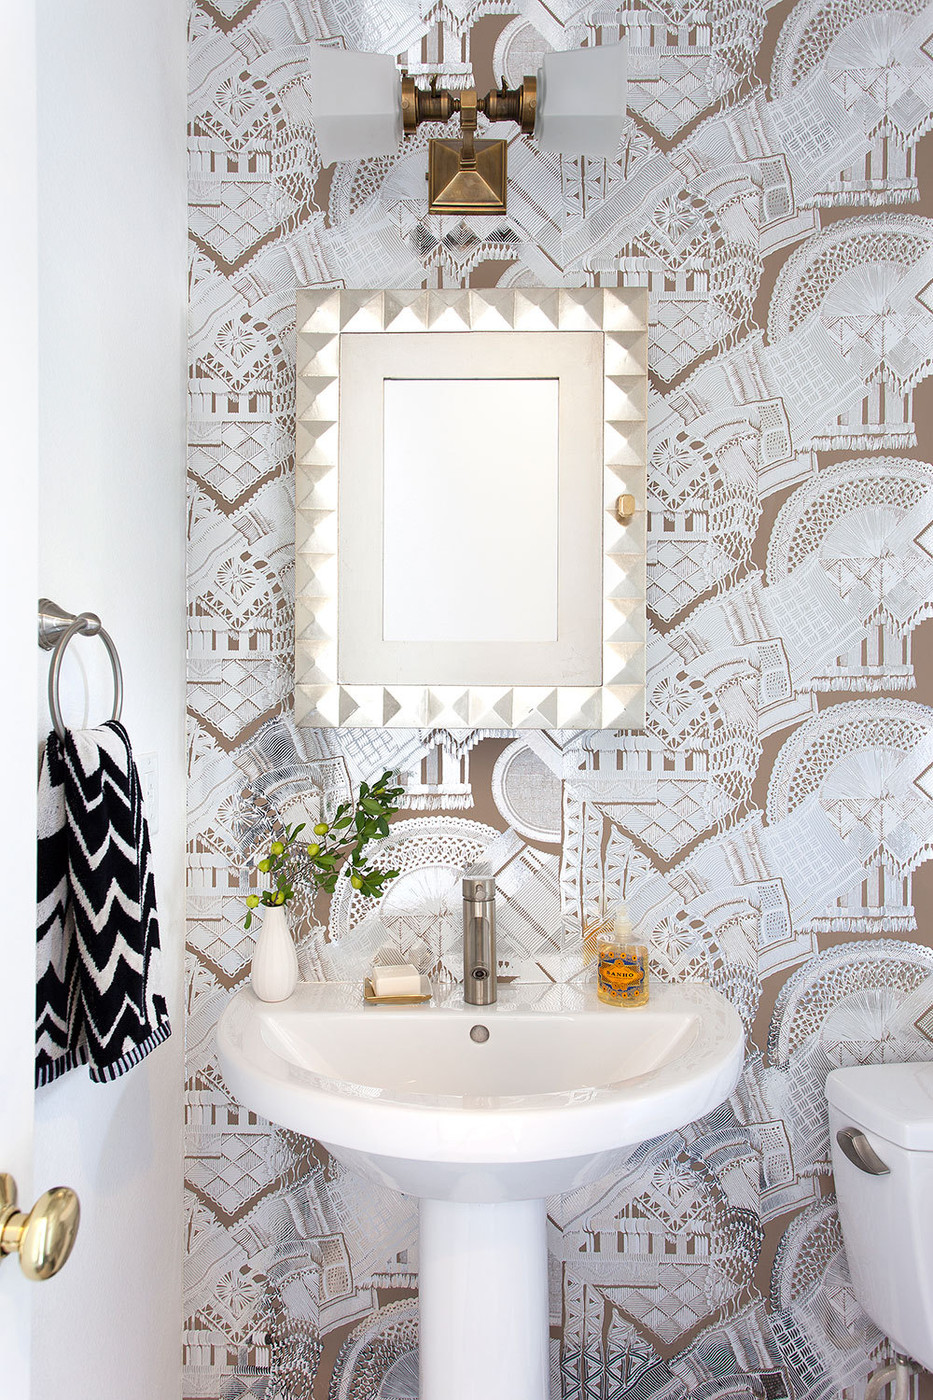 Eclectic bathroom with wallpaper and a geometric mirror